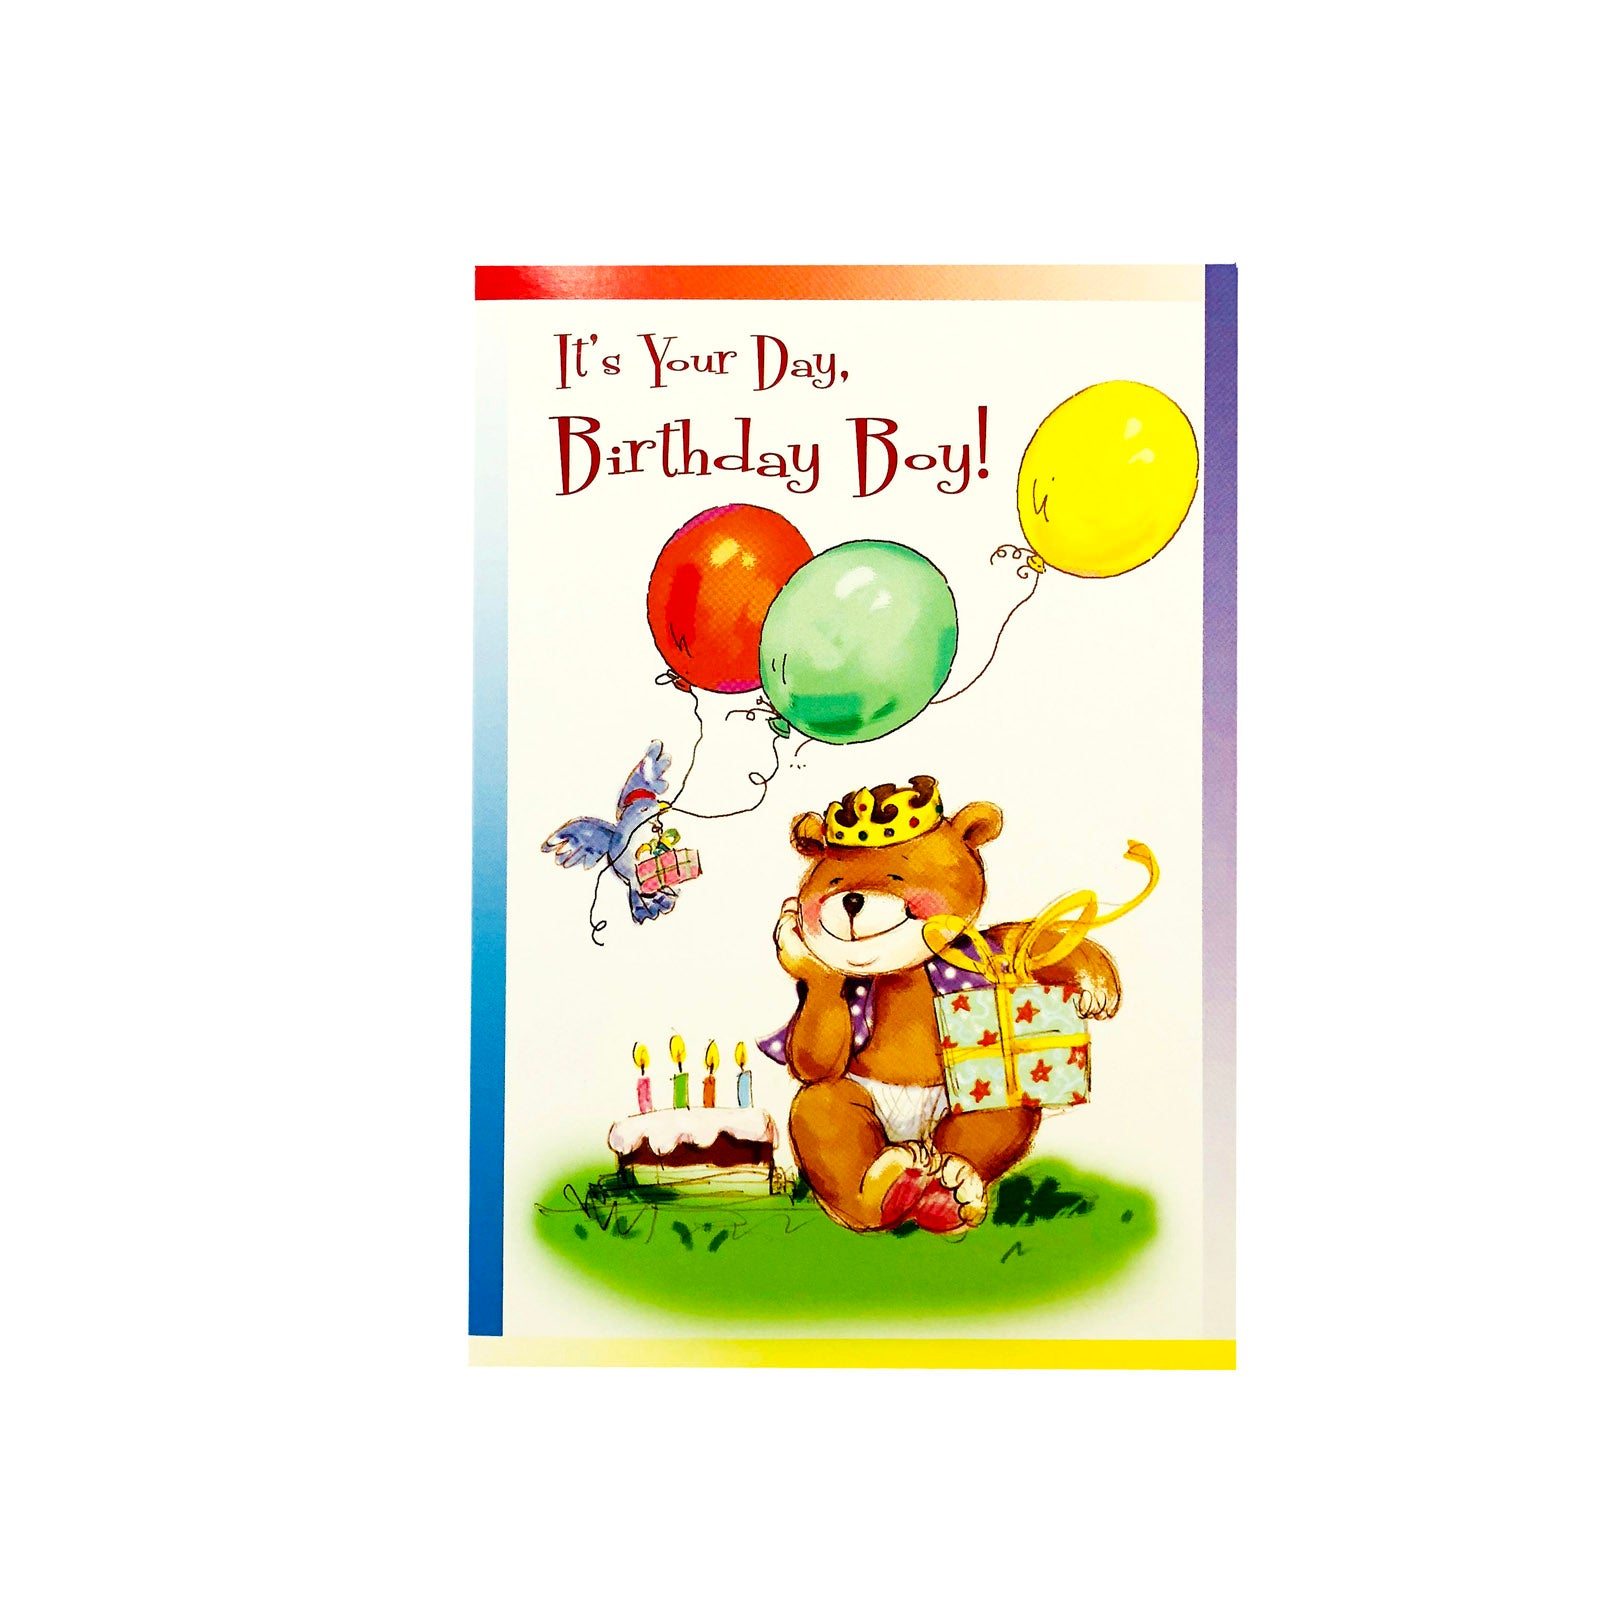 Designer Greetings Birthday Card - It's Your Day Birthday Boy - Balloon Bear